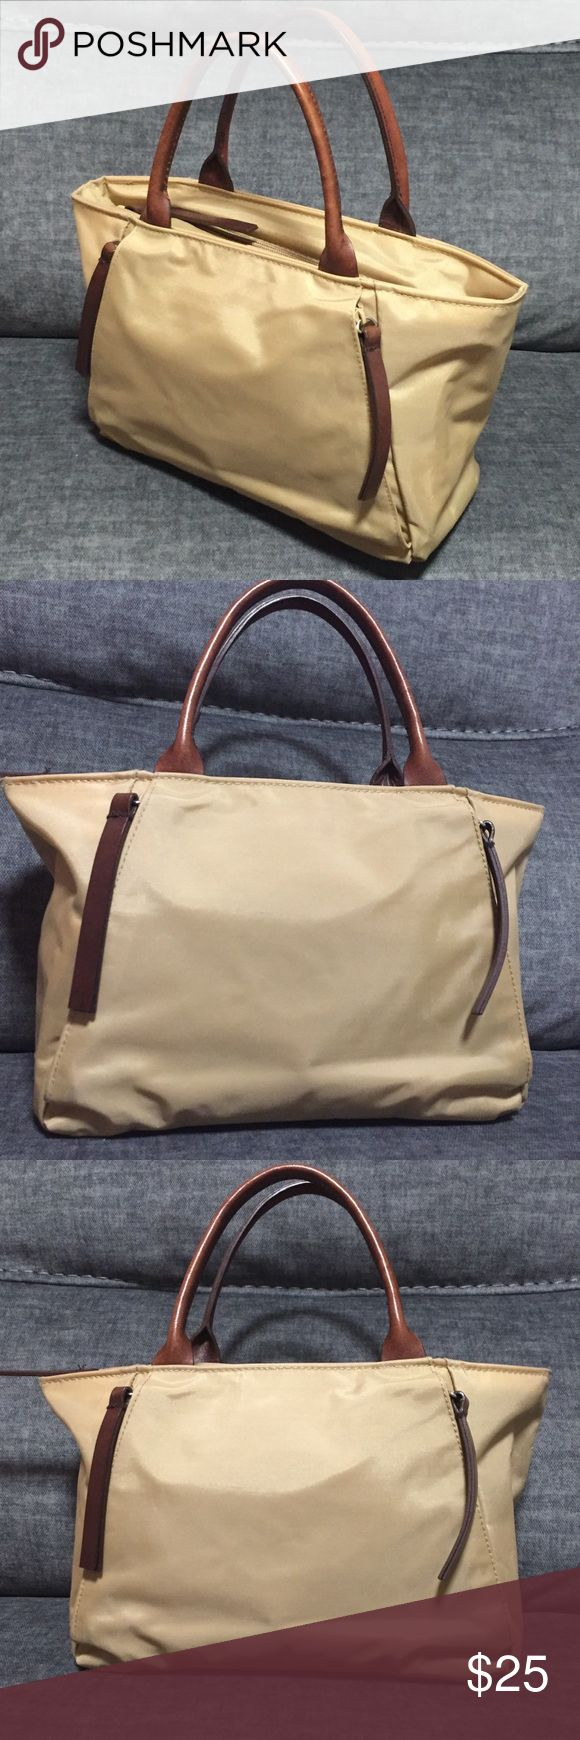 Banana Republic Tan Mini Tote Bag Nylon material mini tote bag. Brow leather strap handle and zipper tabs. Front and inside pockets included. Used excellent condition. Banana Republic Bags Totes